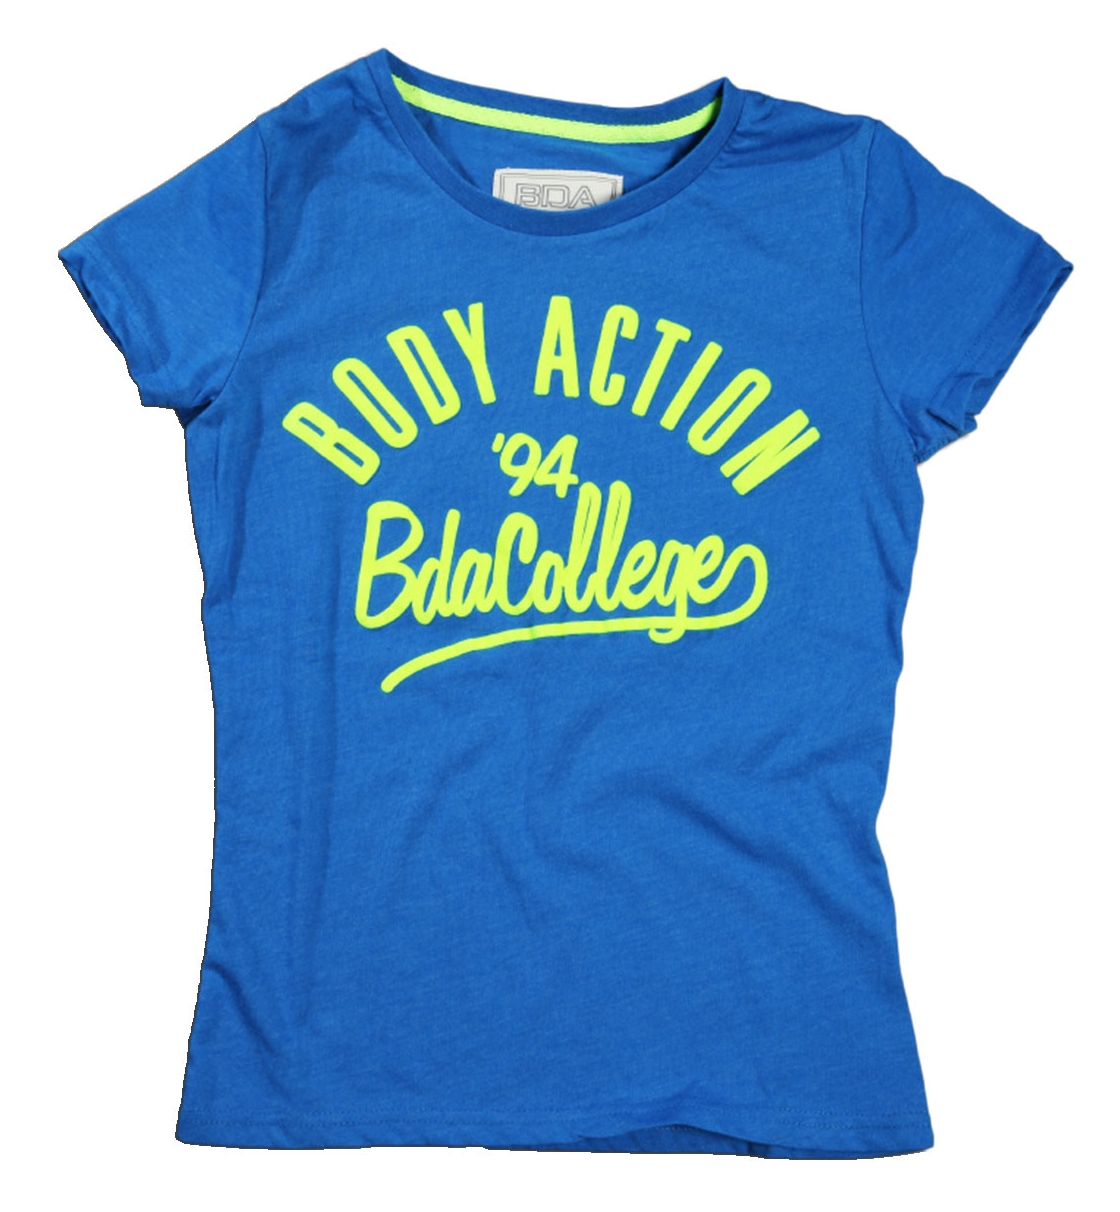 Body Action WOMEN S/S T-SHIRT